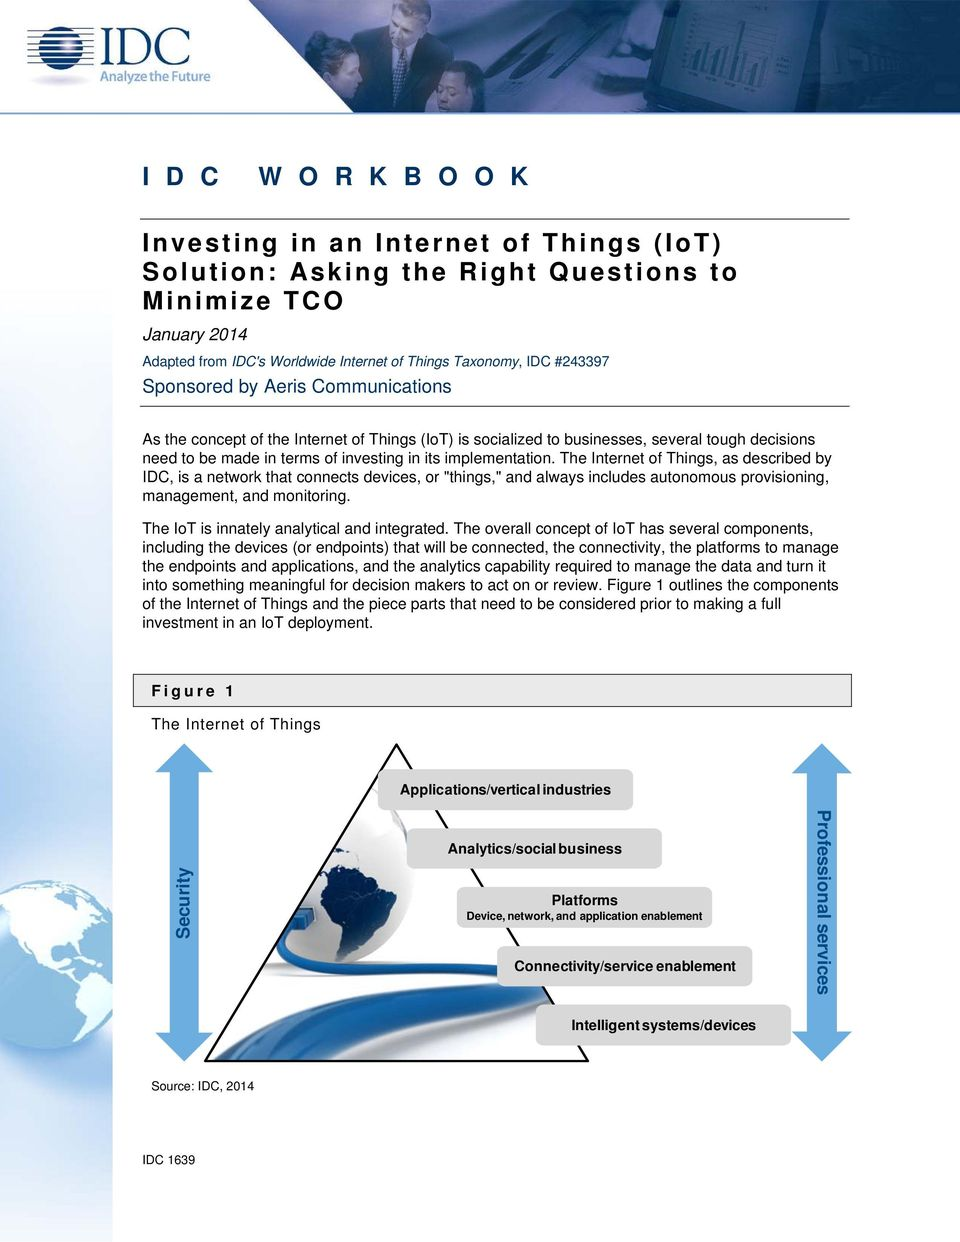 "The Internet of Things, as described by IDC, is a network that connects devices, or ""things,"" and always includes autonomous provisioning, management, and monitoring."